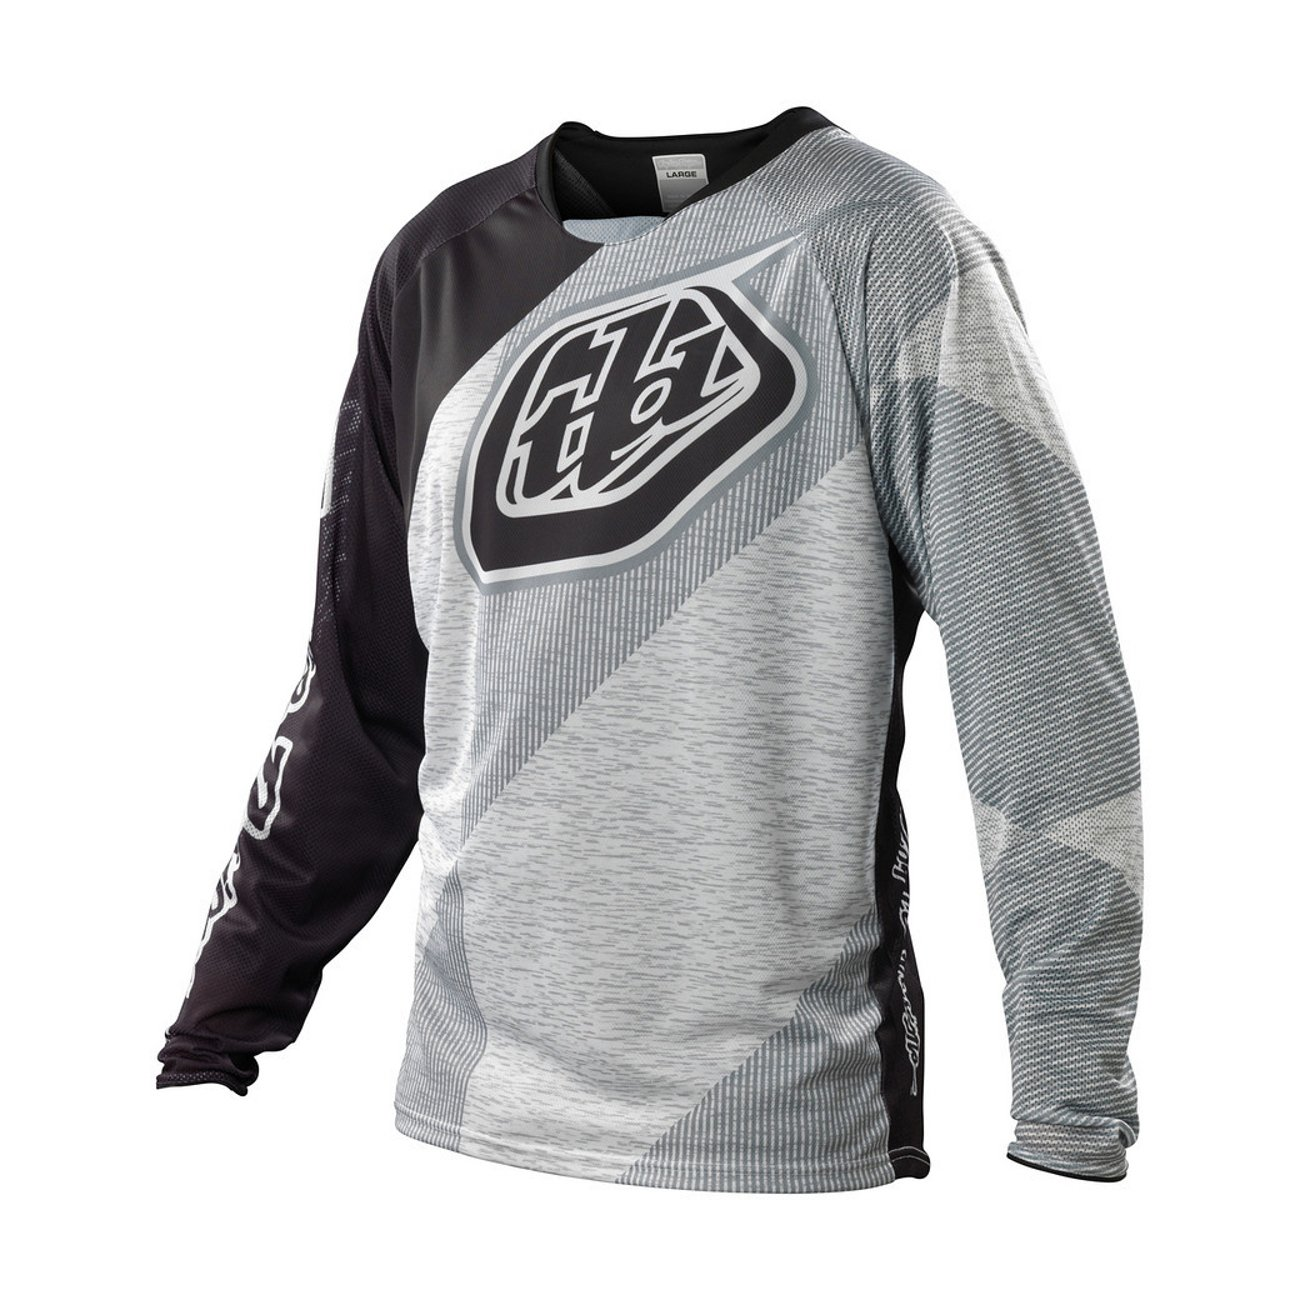 Troy Lee Designs Sprint Long Sleeve Jersey Turismo